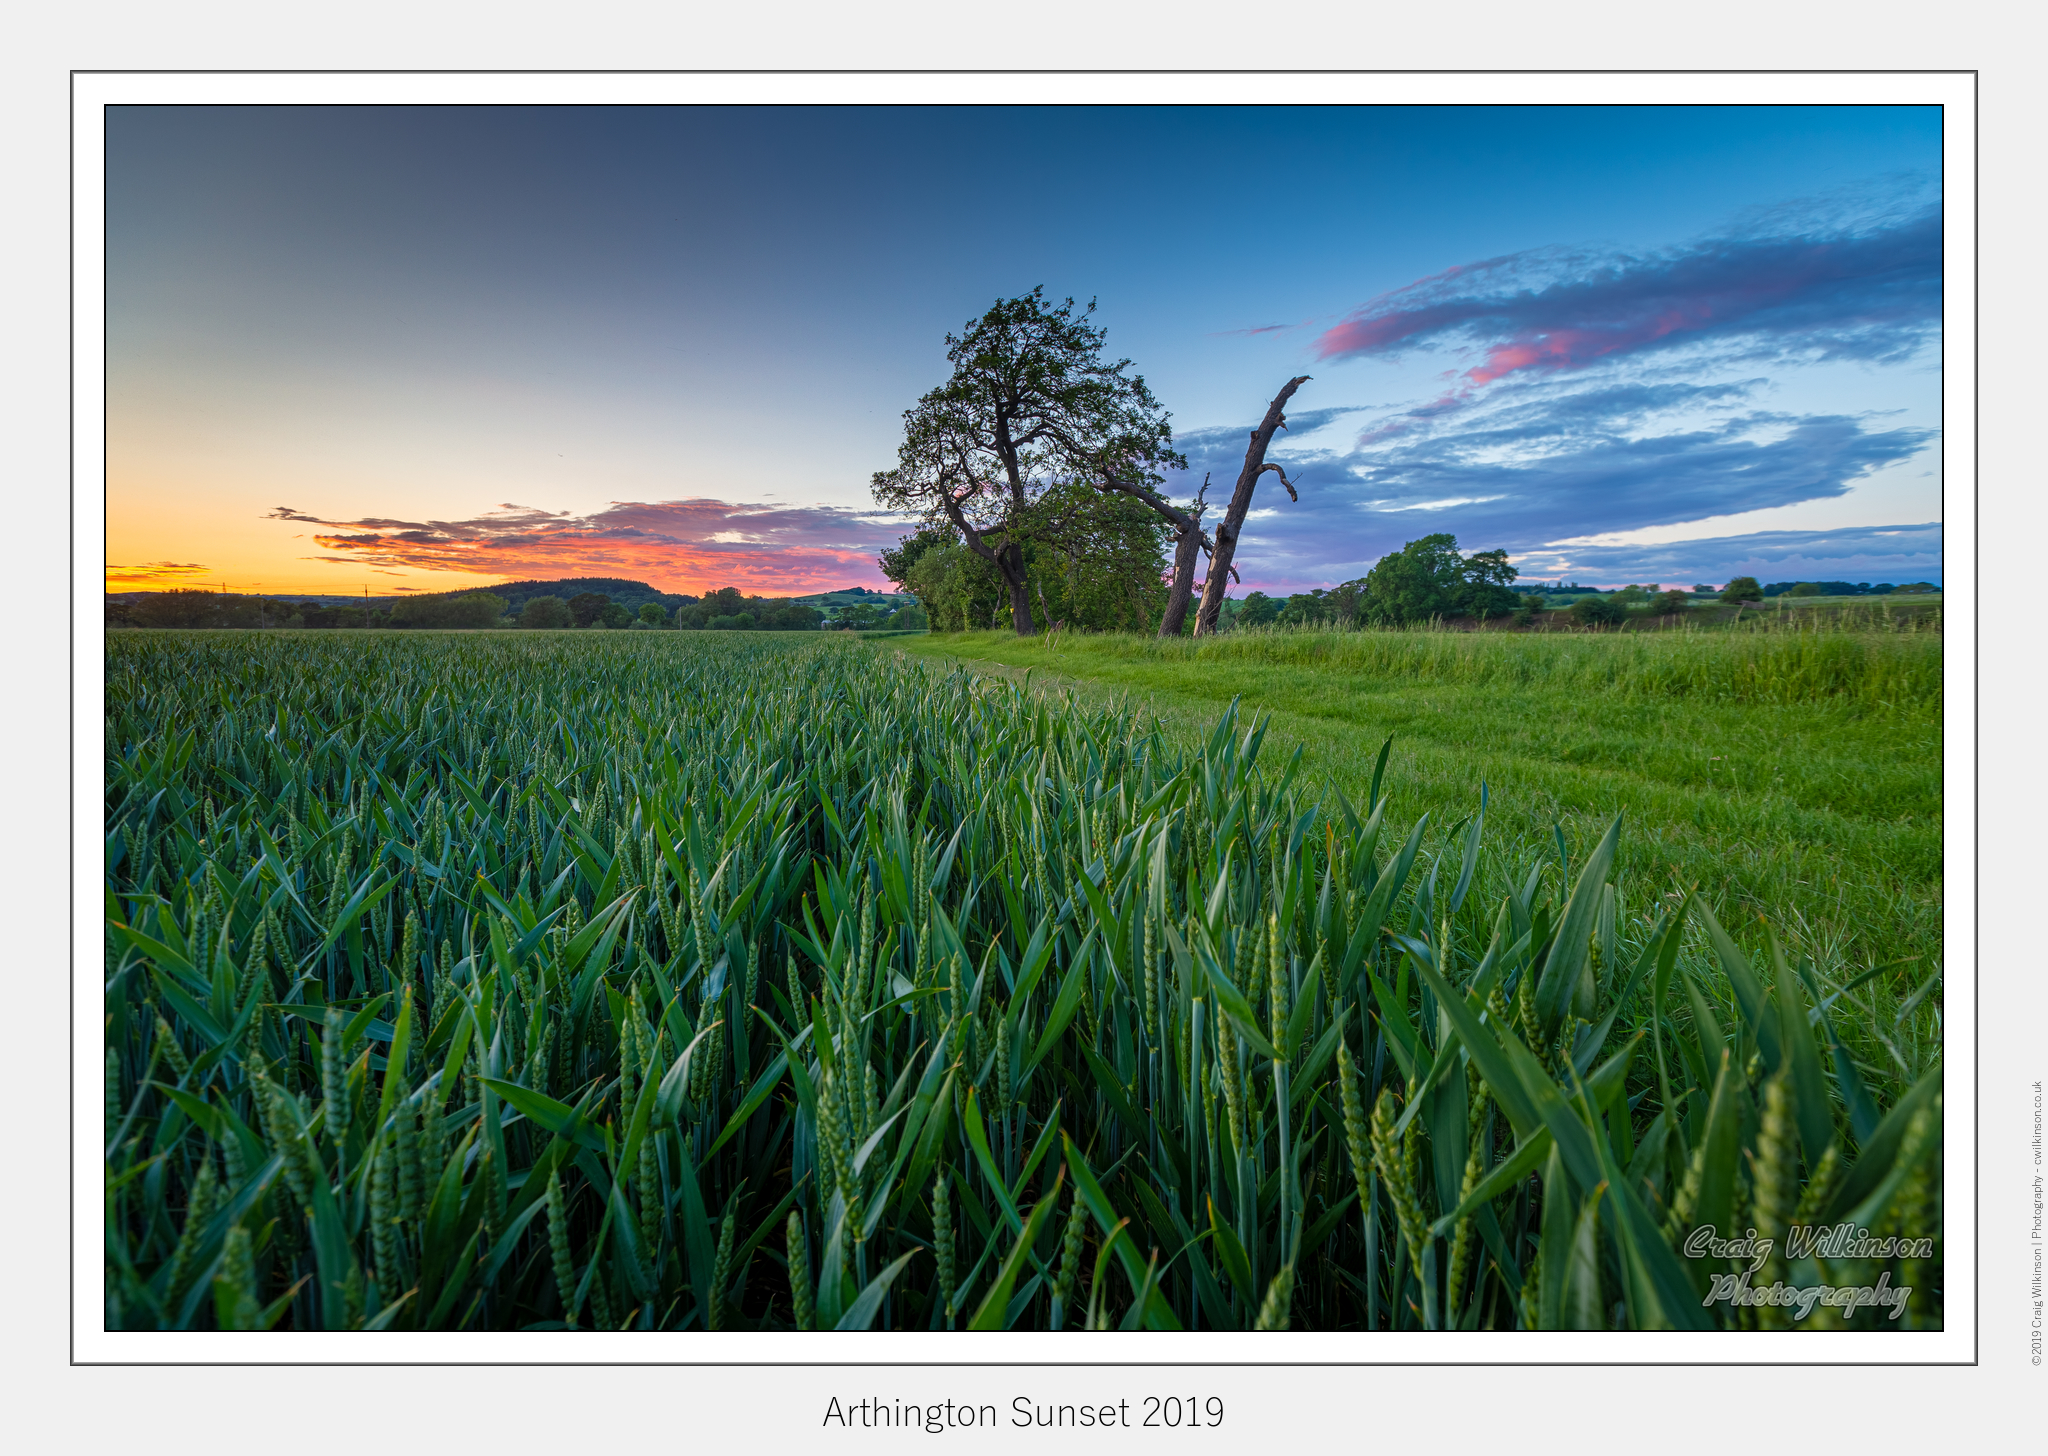 01-Arthington Sunset 2019 - (5760 x 3840).jpg